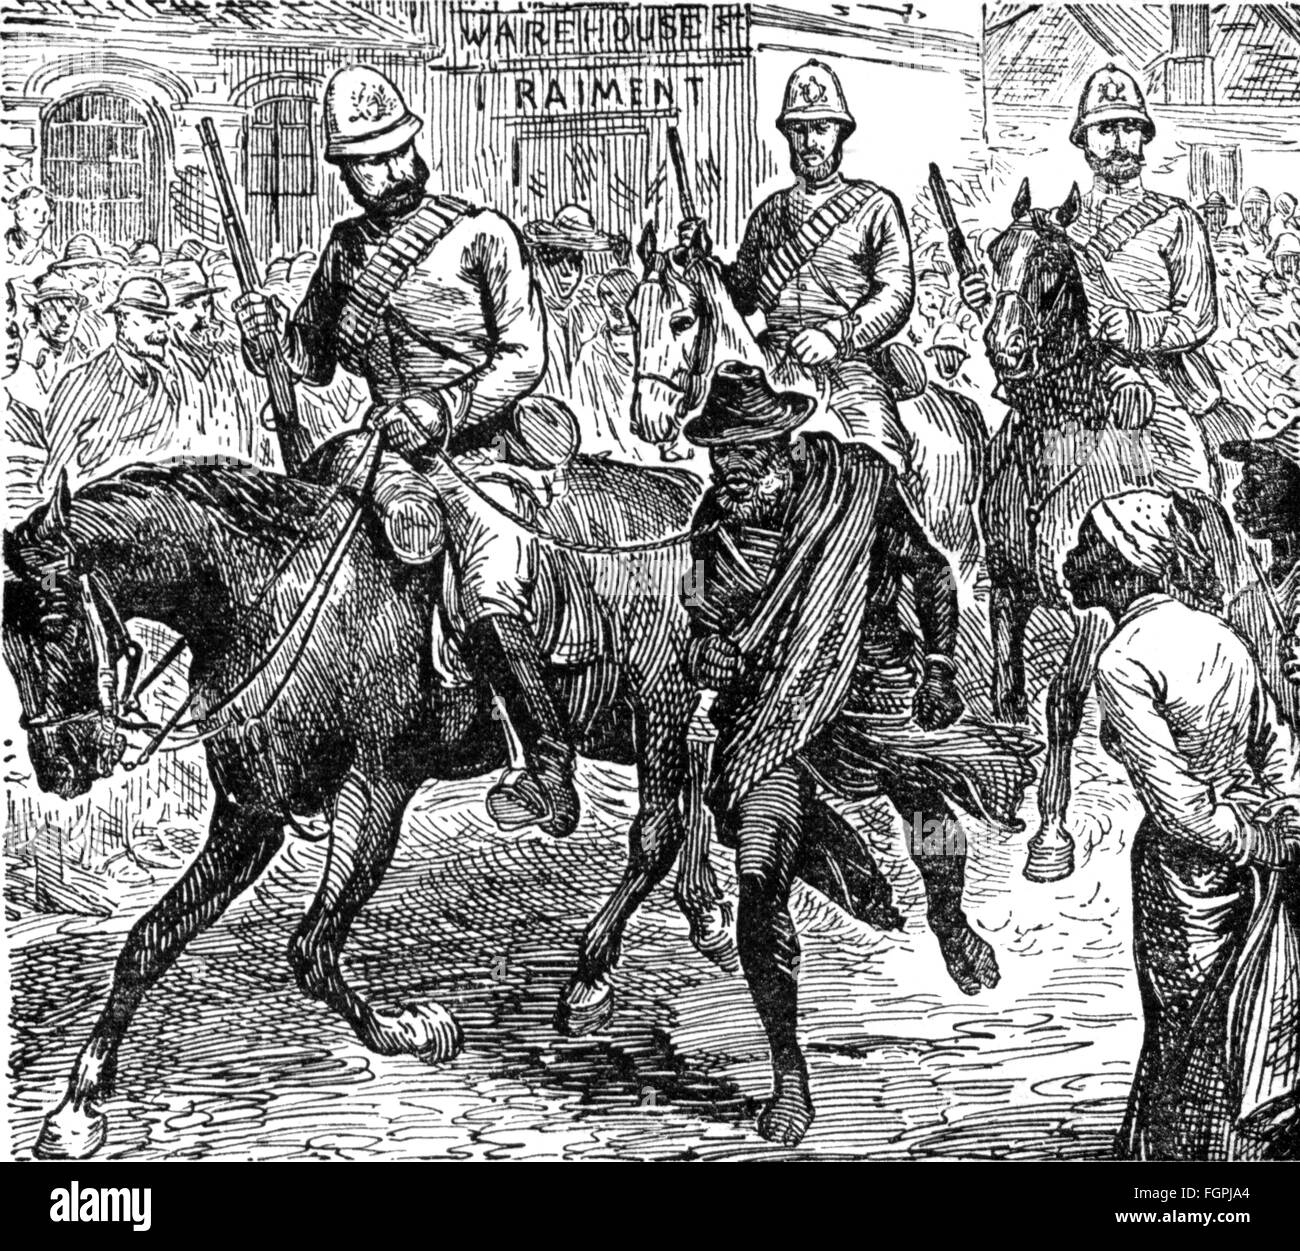 colonialism, Africa, British soldiers leading the chief of an insurgent South African tribe through the streets, - Stock Image